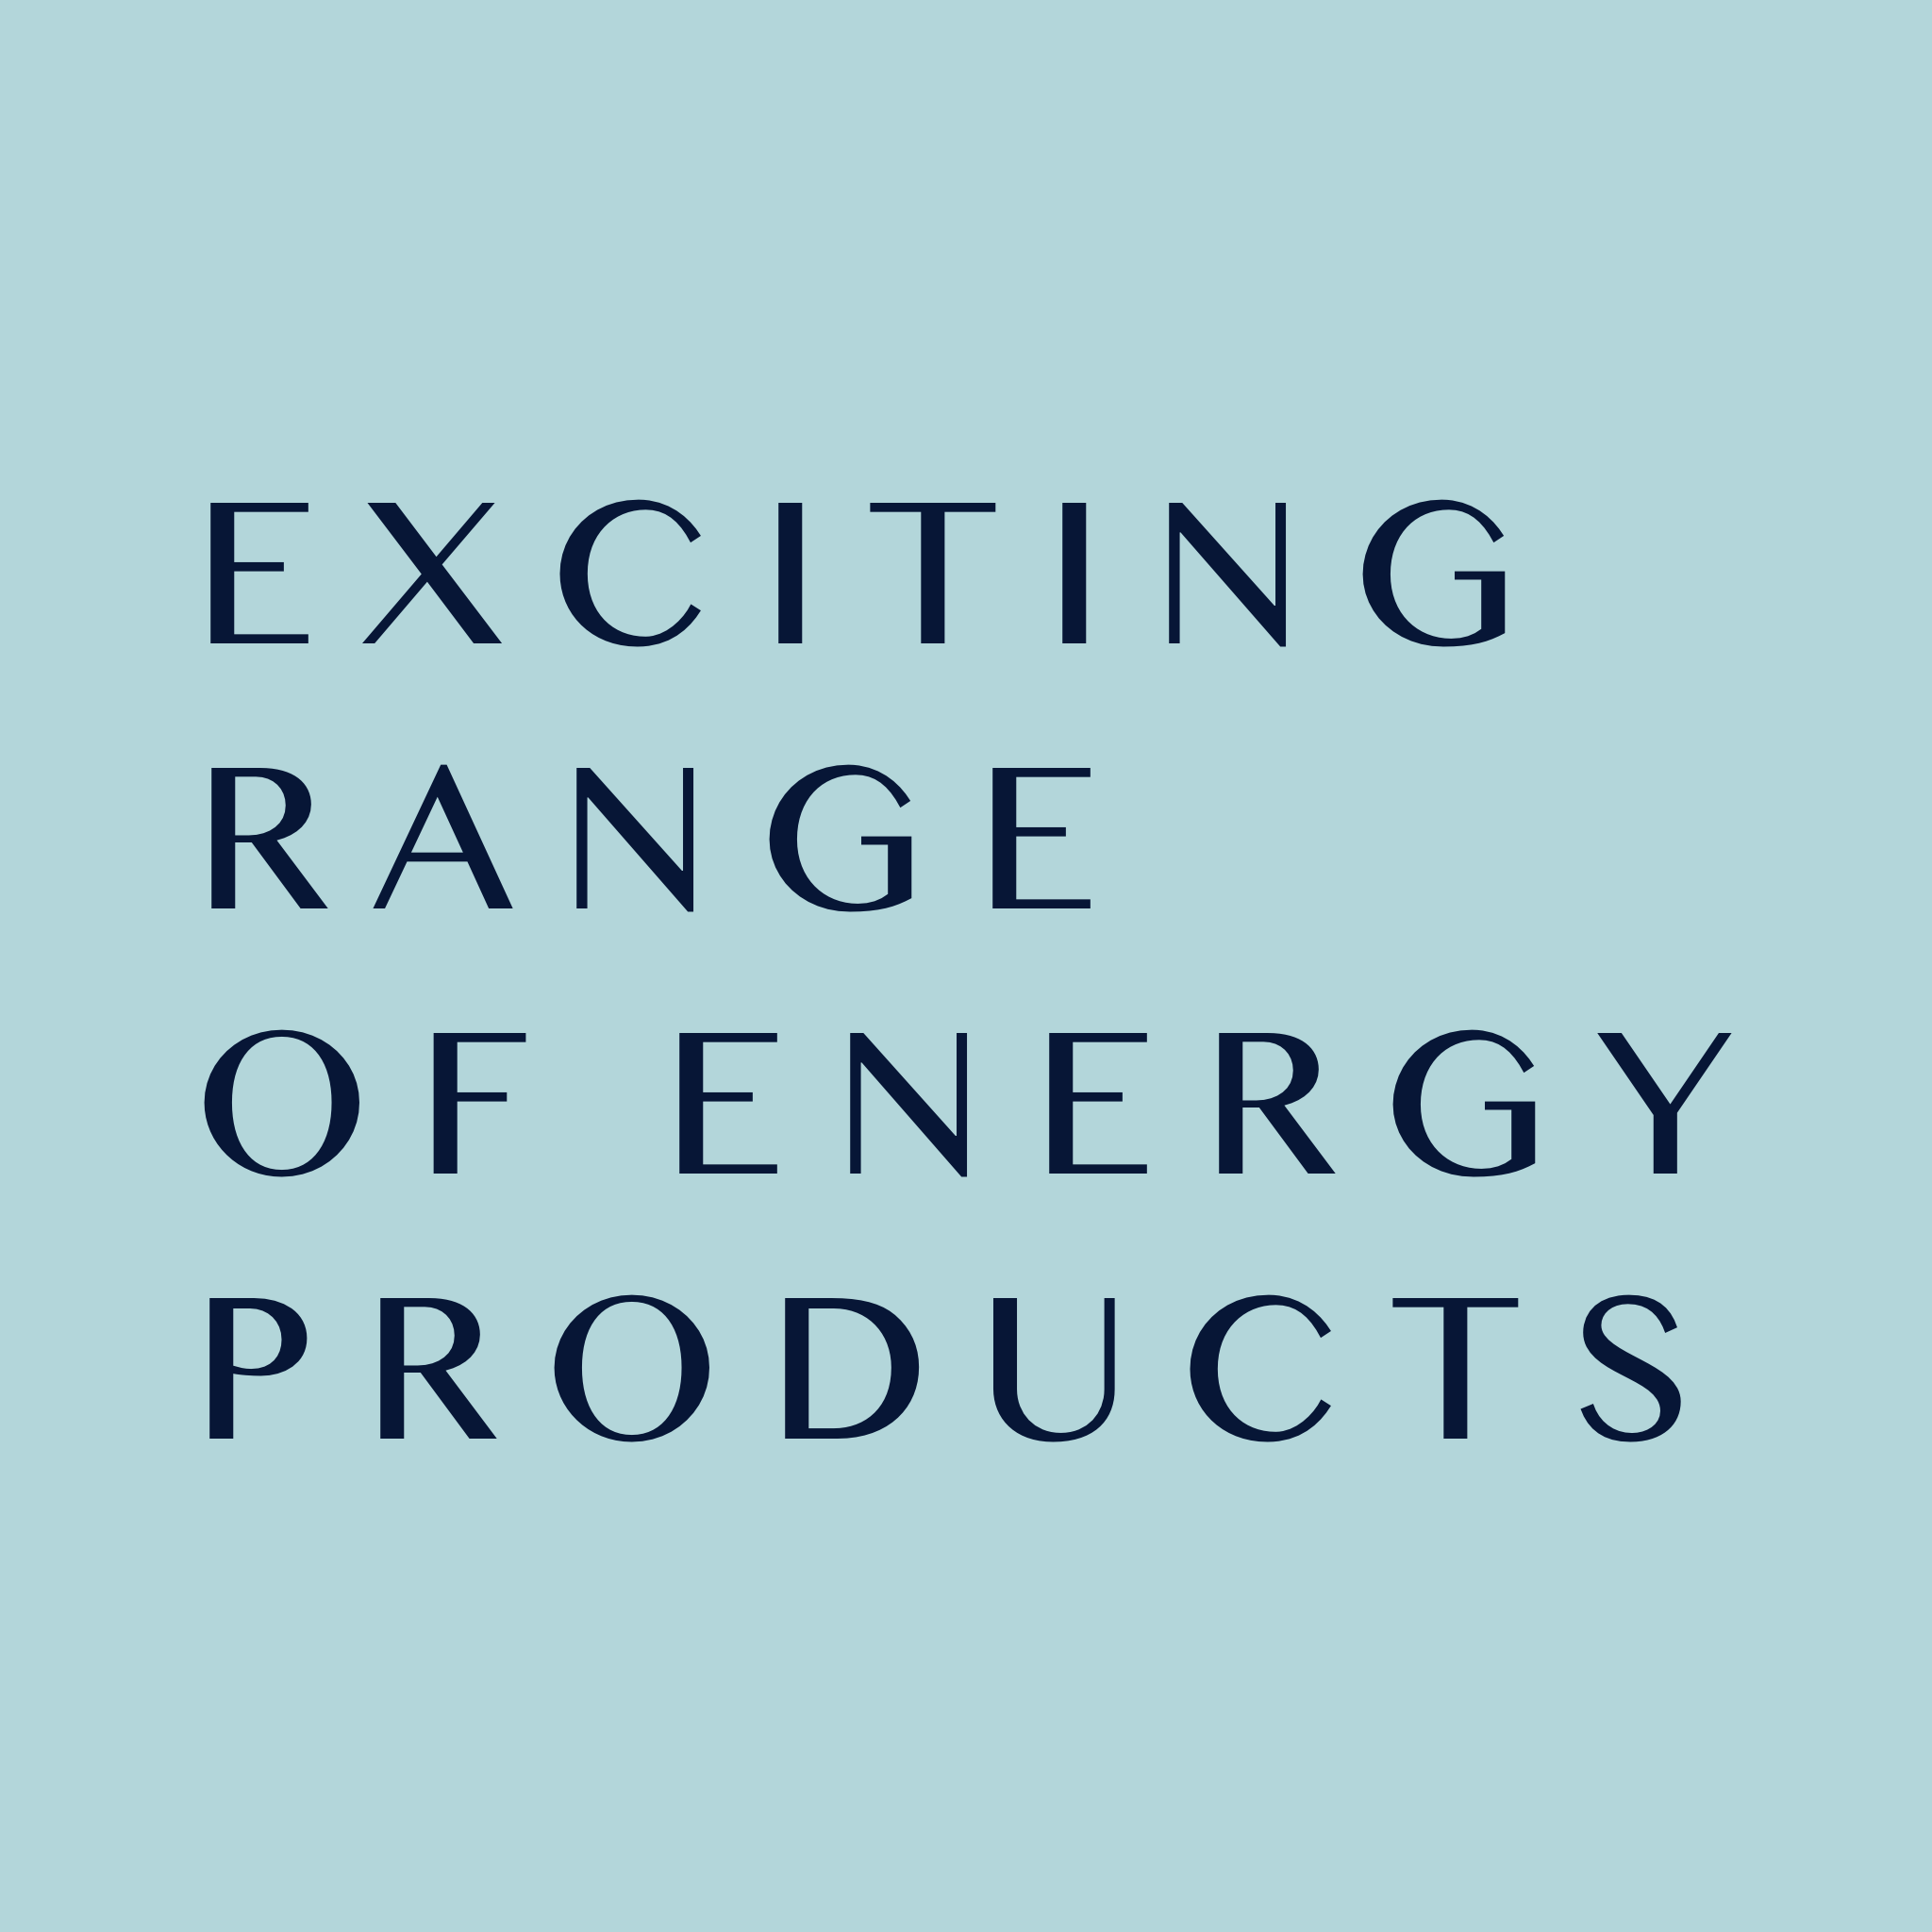 Exciting range of energy products